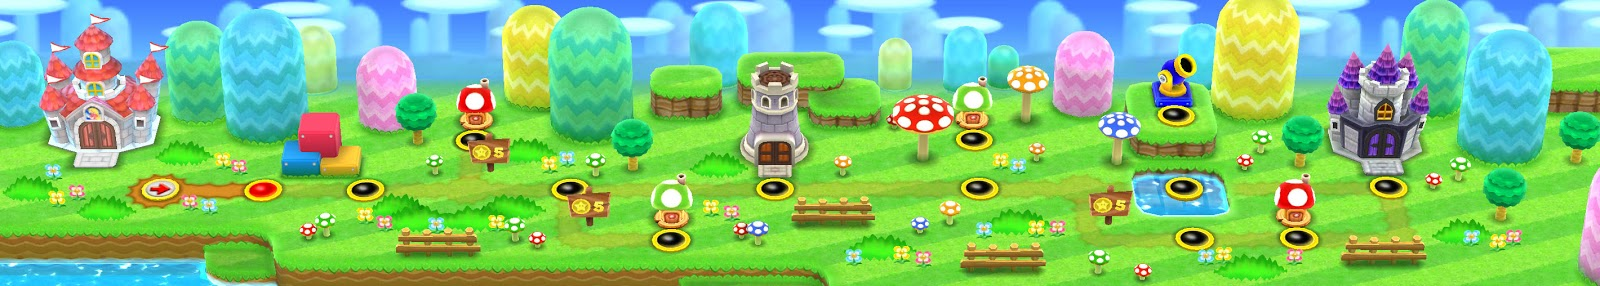 The code of truth review new super mario bros 2 sound the same can be said about the sounds in new super mario bros 2 it is hardly different from the other nsmb games in fact the music in the game publicscrutiny Choice Image